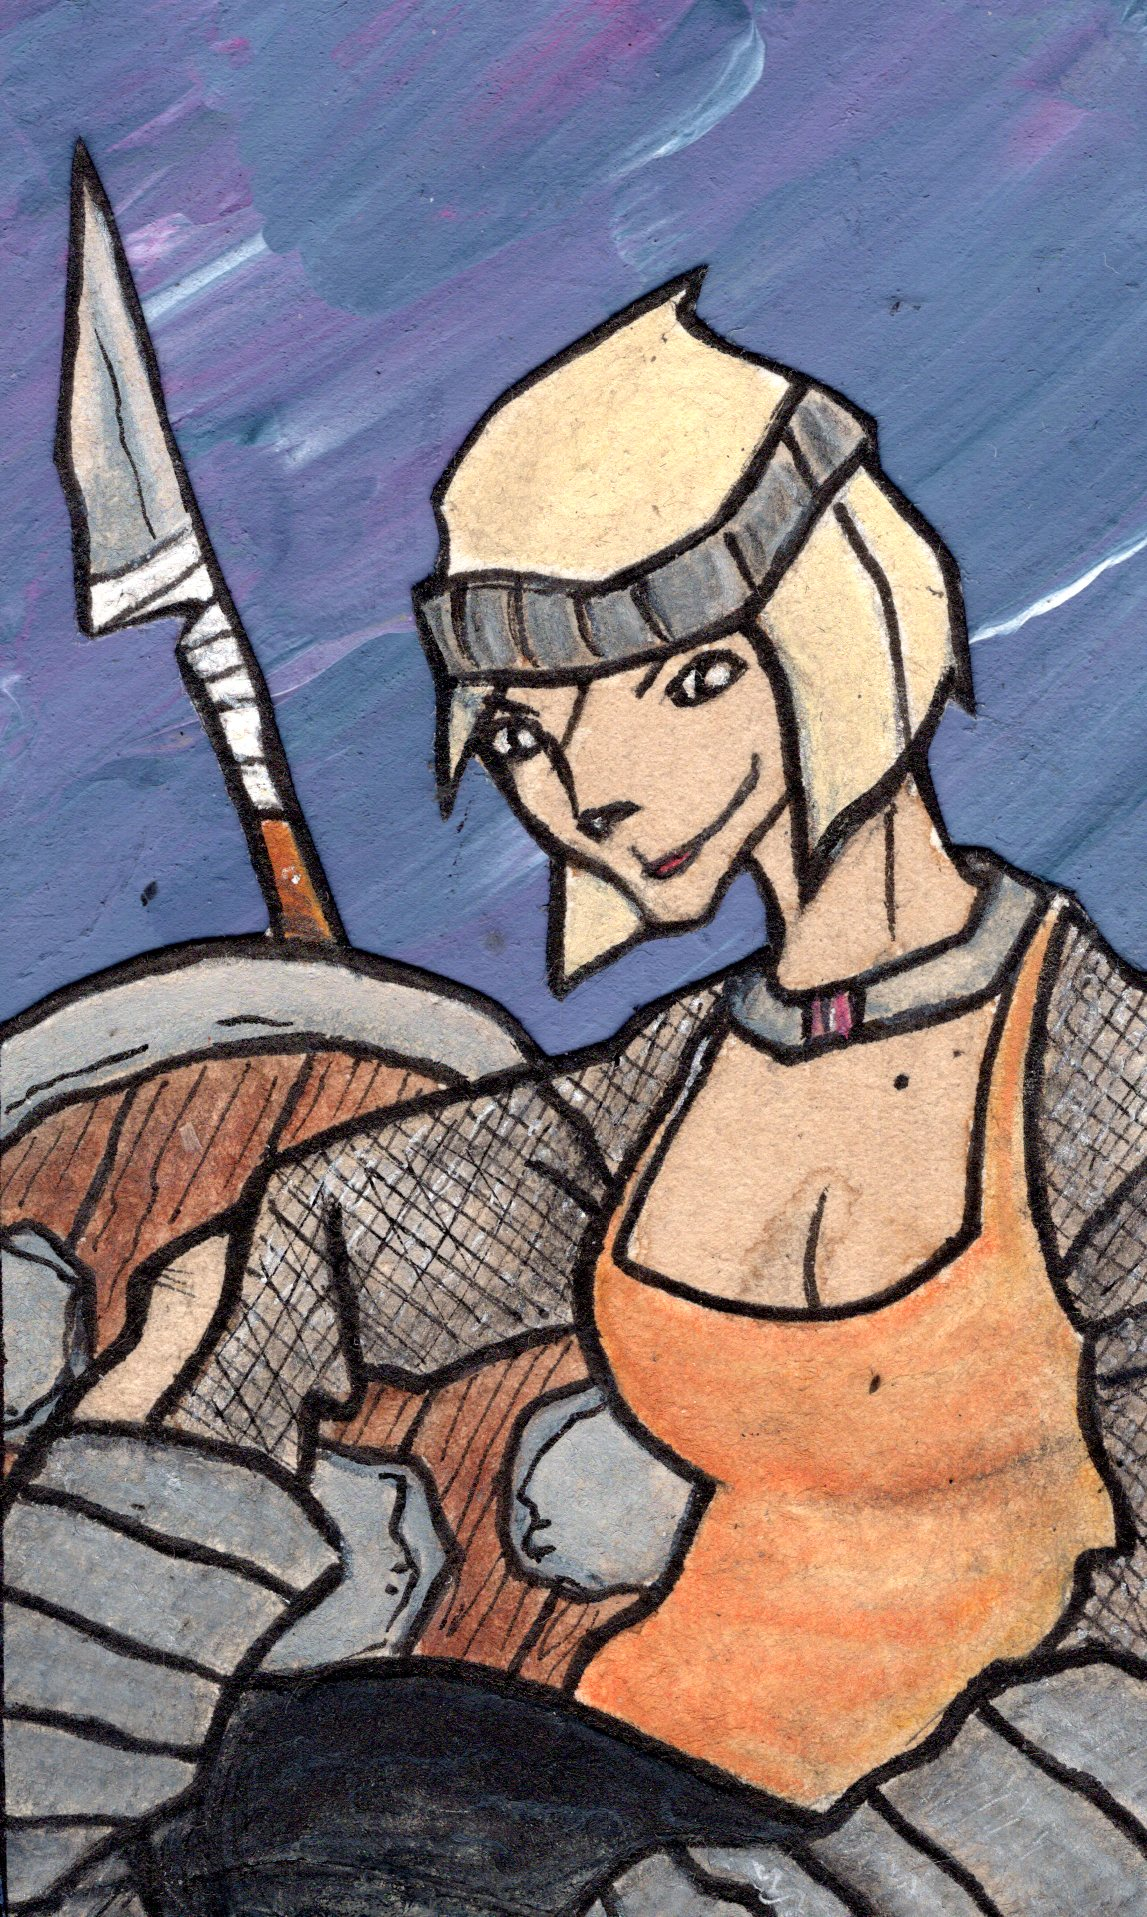 The Shield Maiden